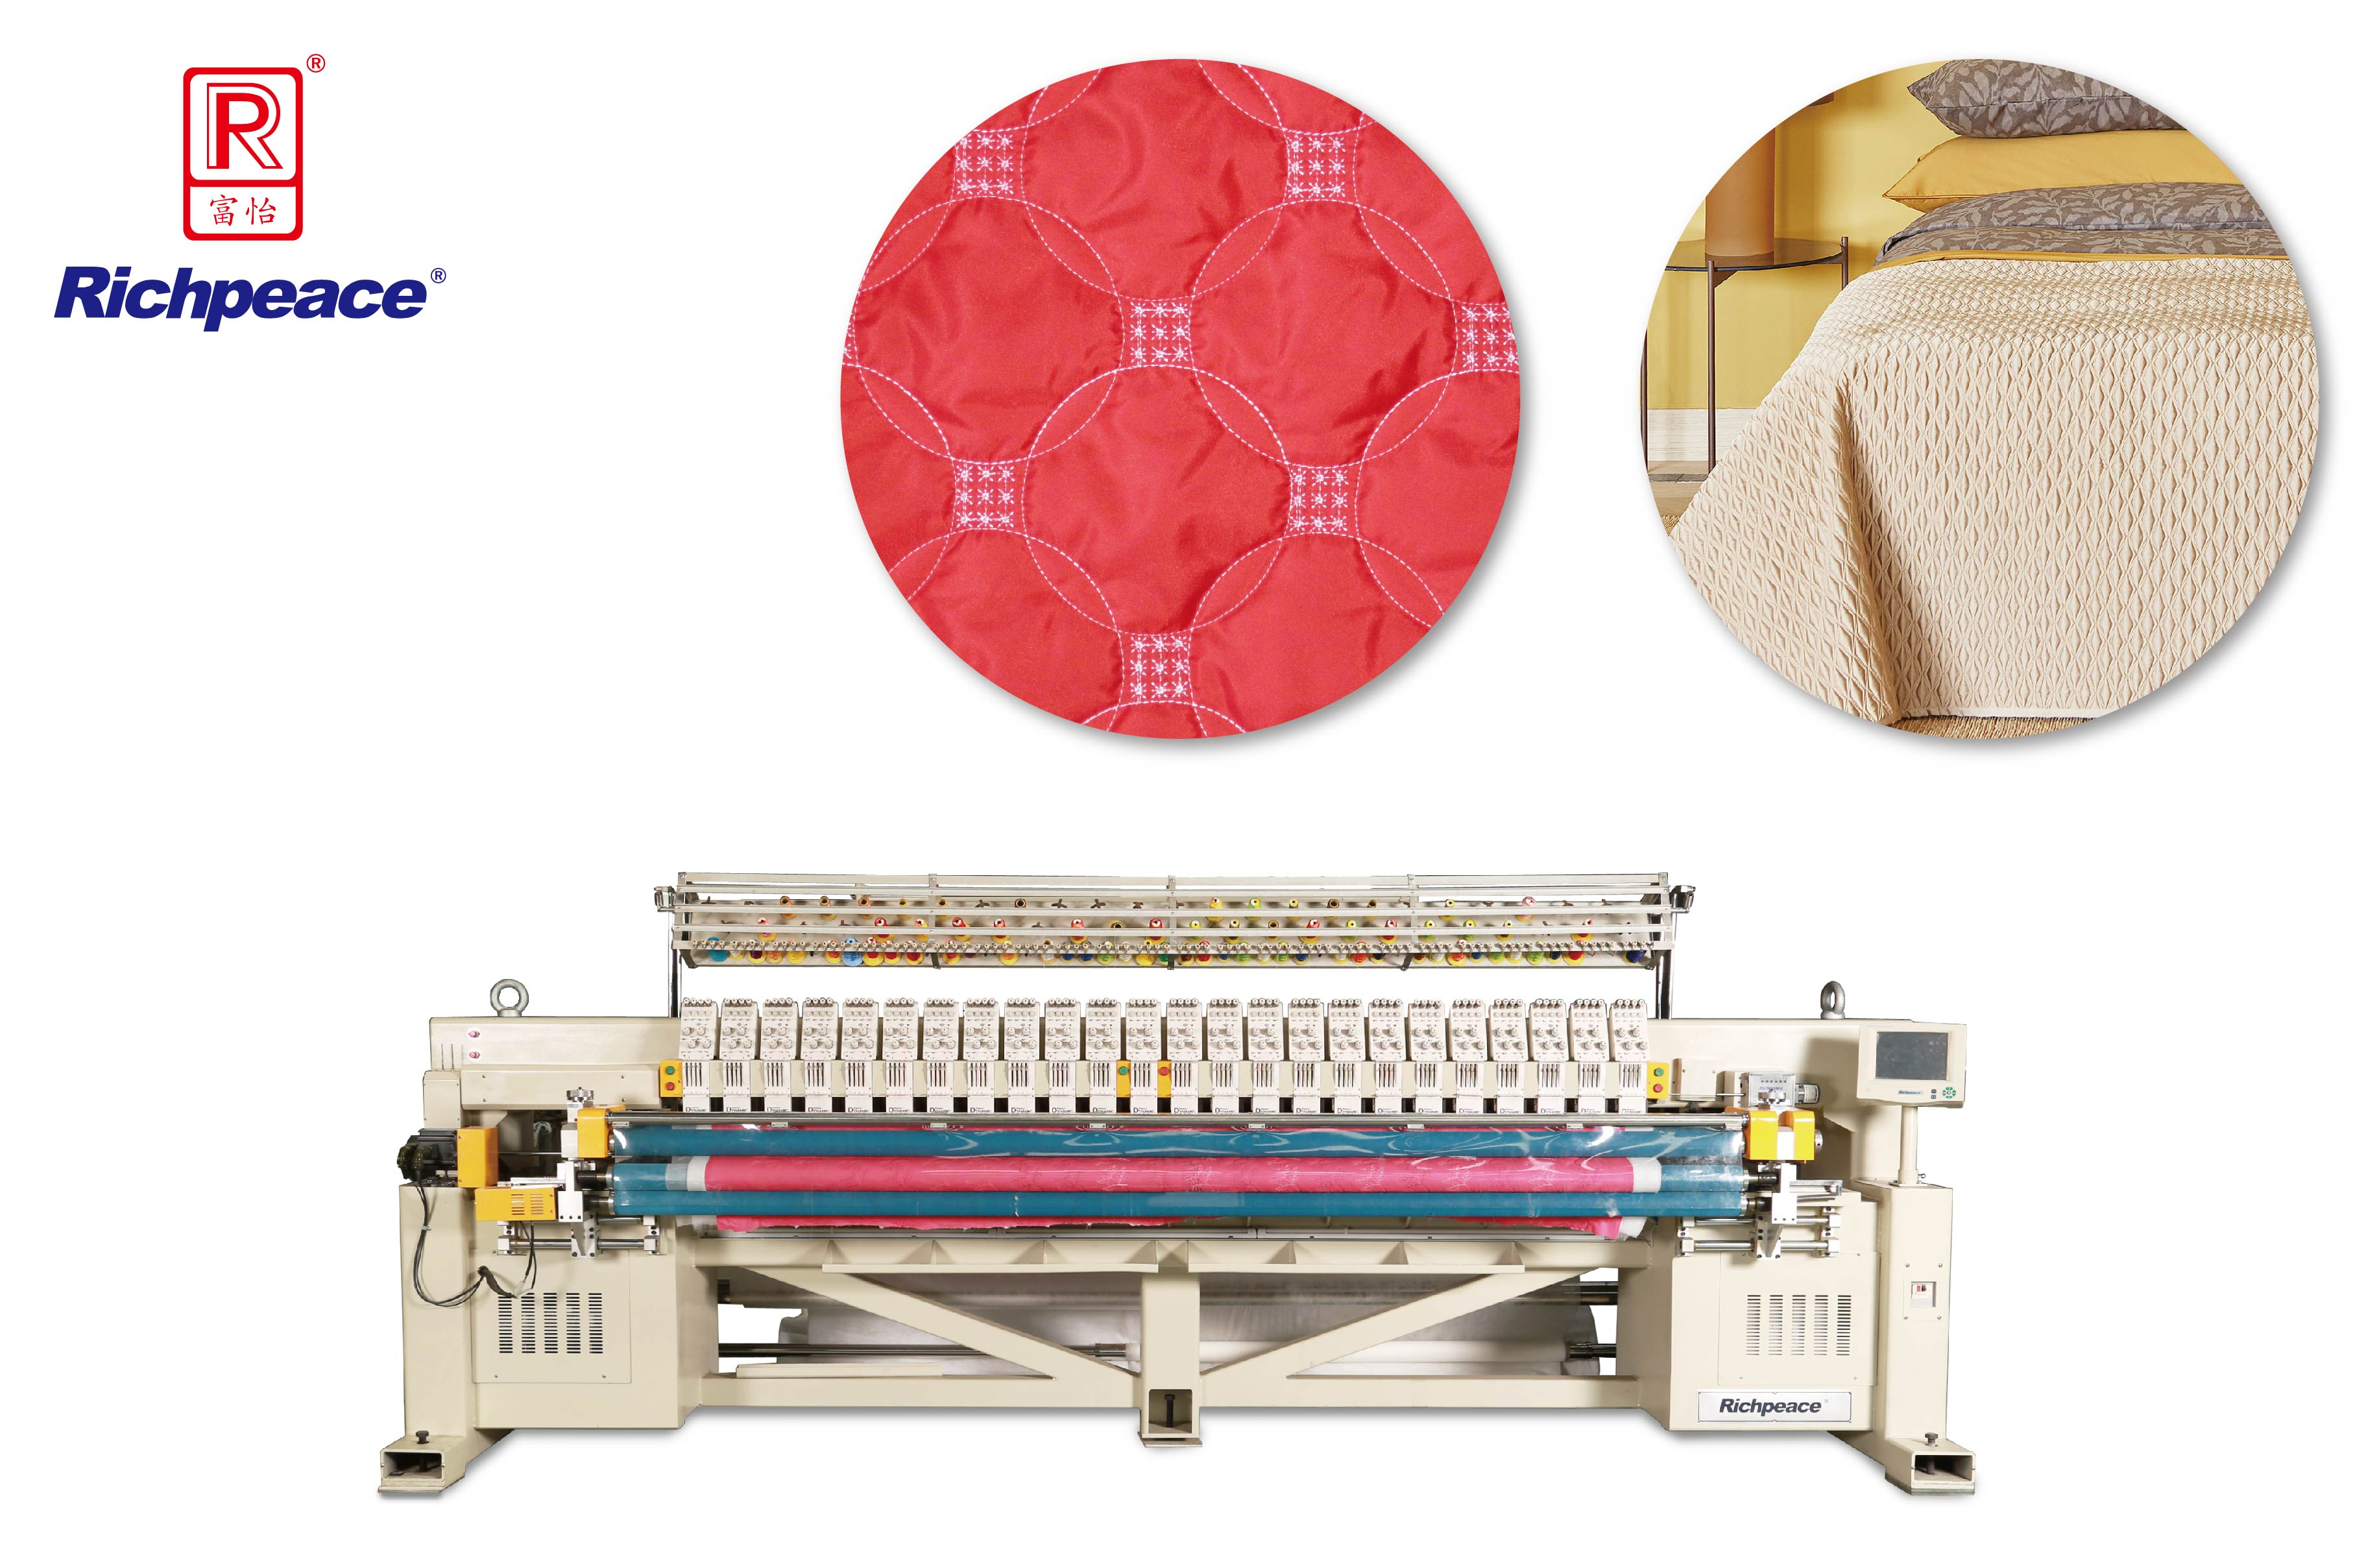 Richpeace Computerized Multi-color Single Roll Quilting and Embroidery Machine